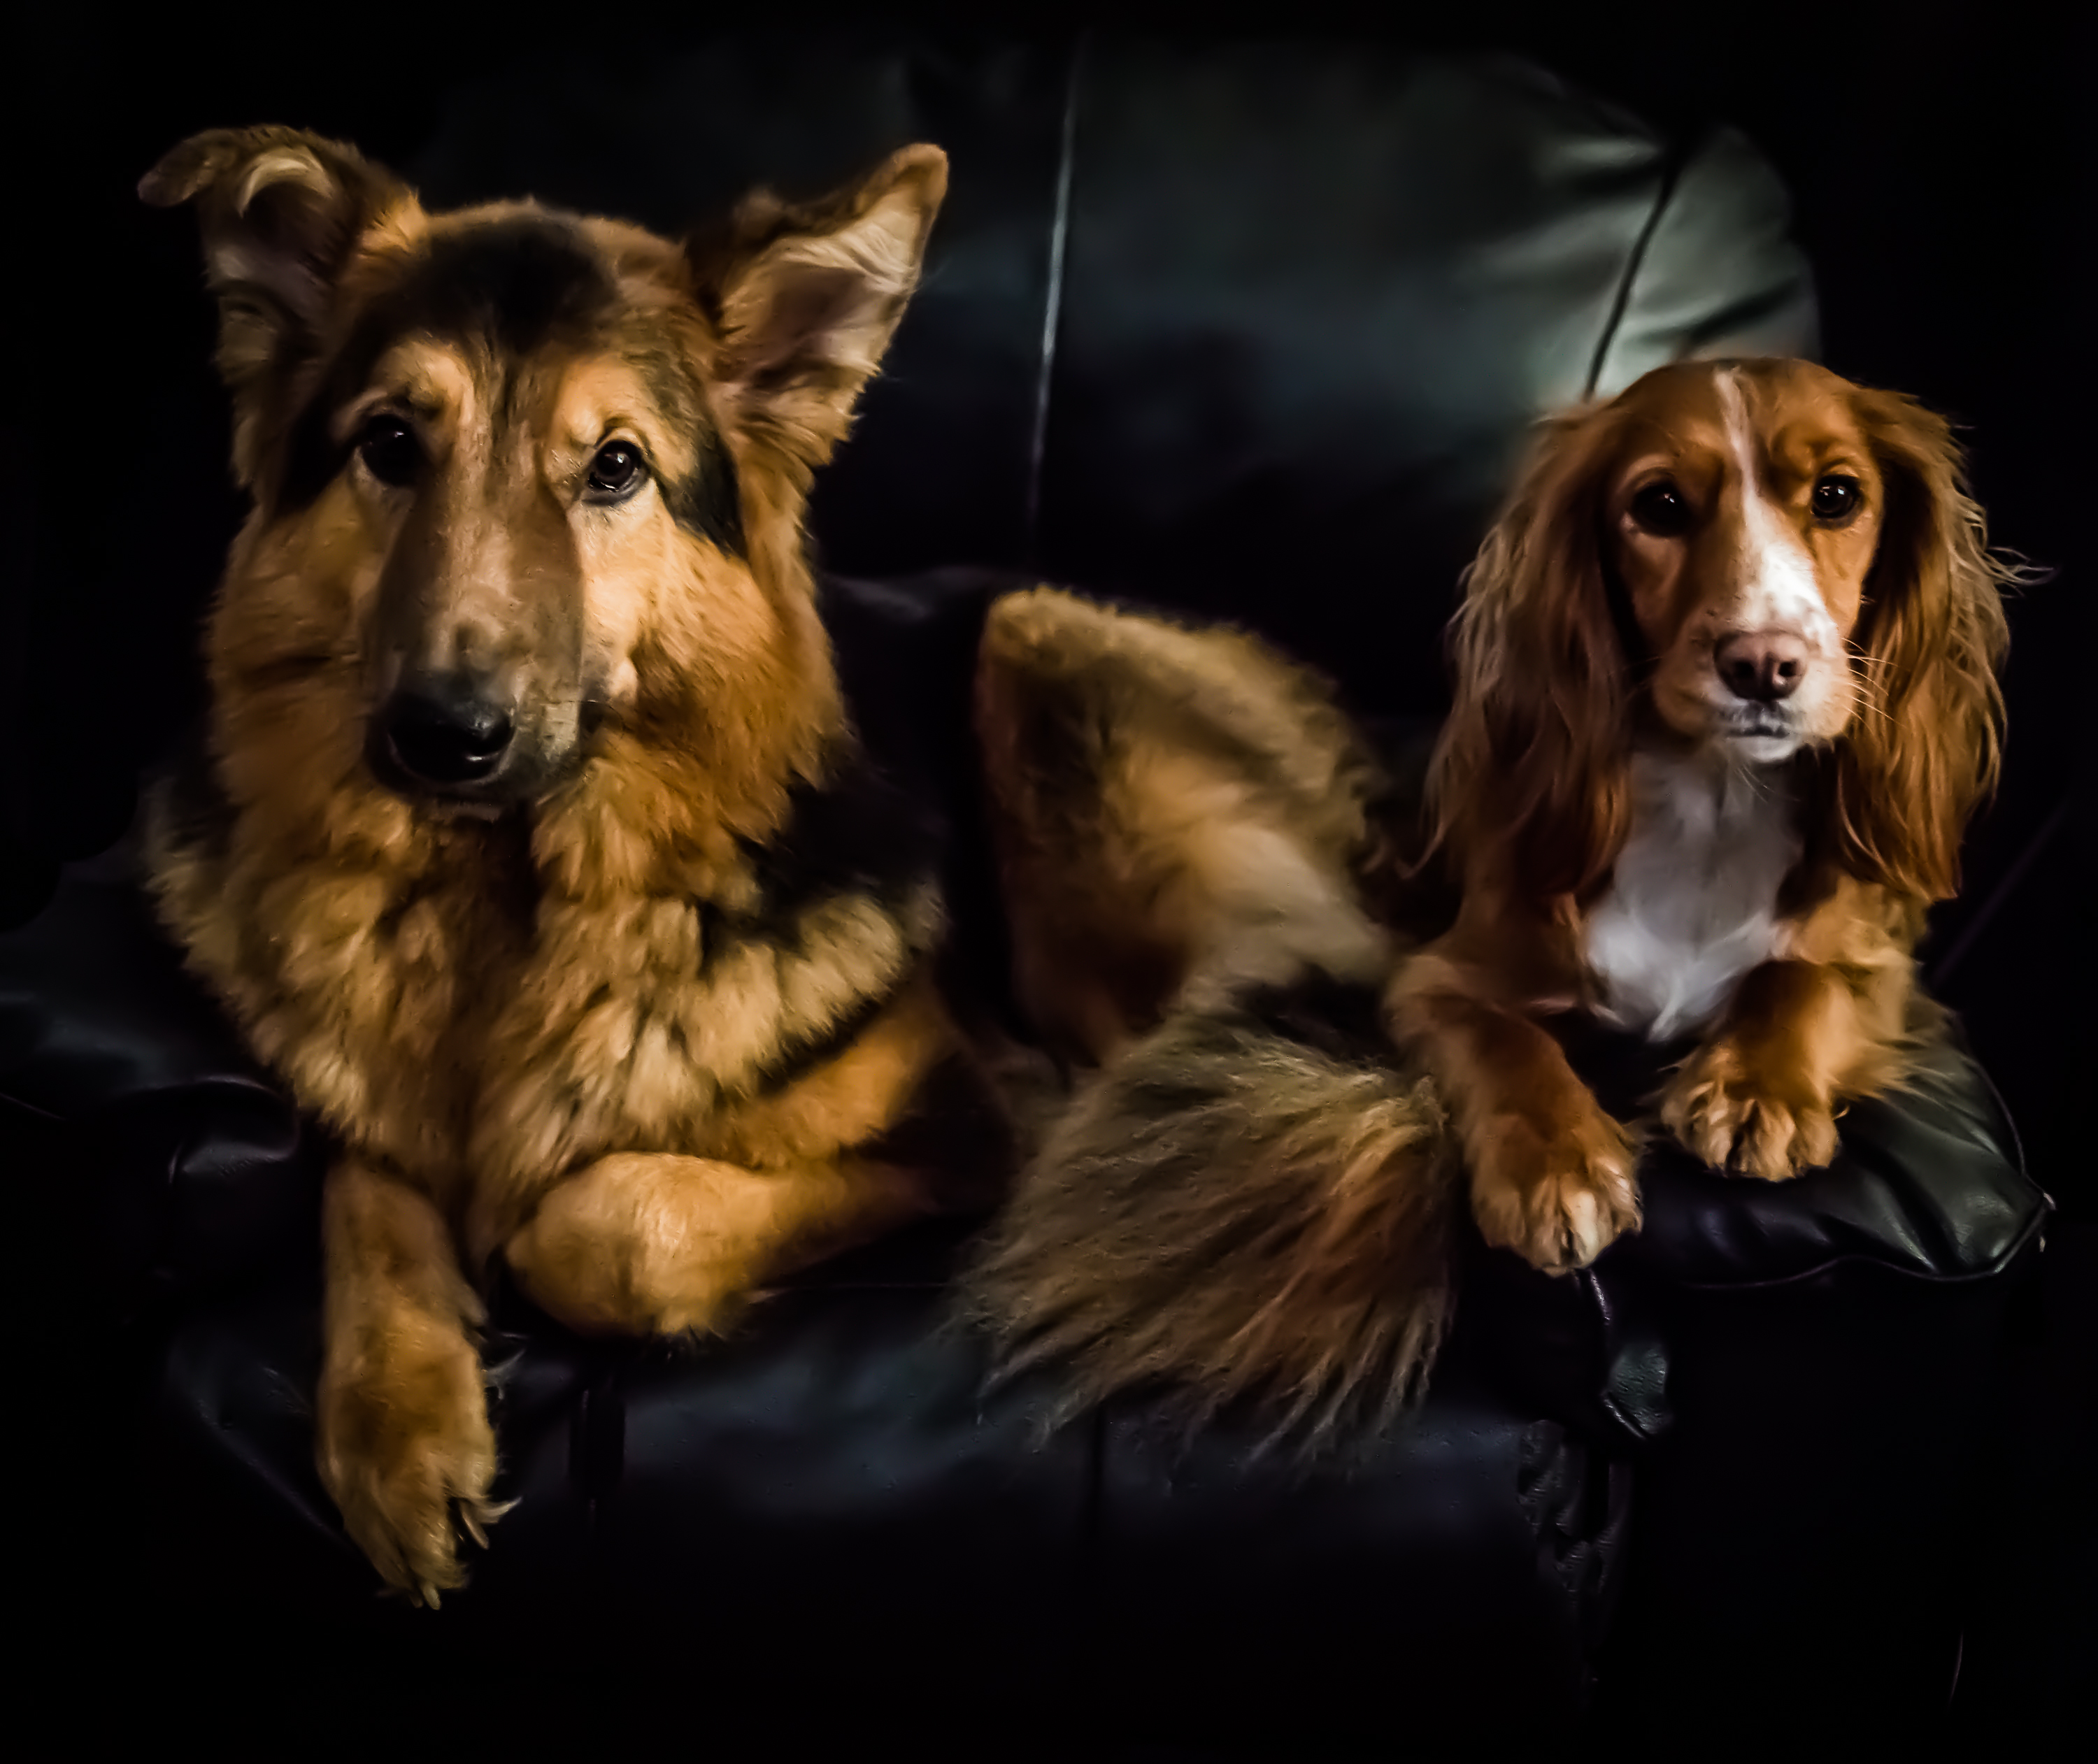 German Shepherd and Cocker Spaniel